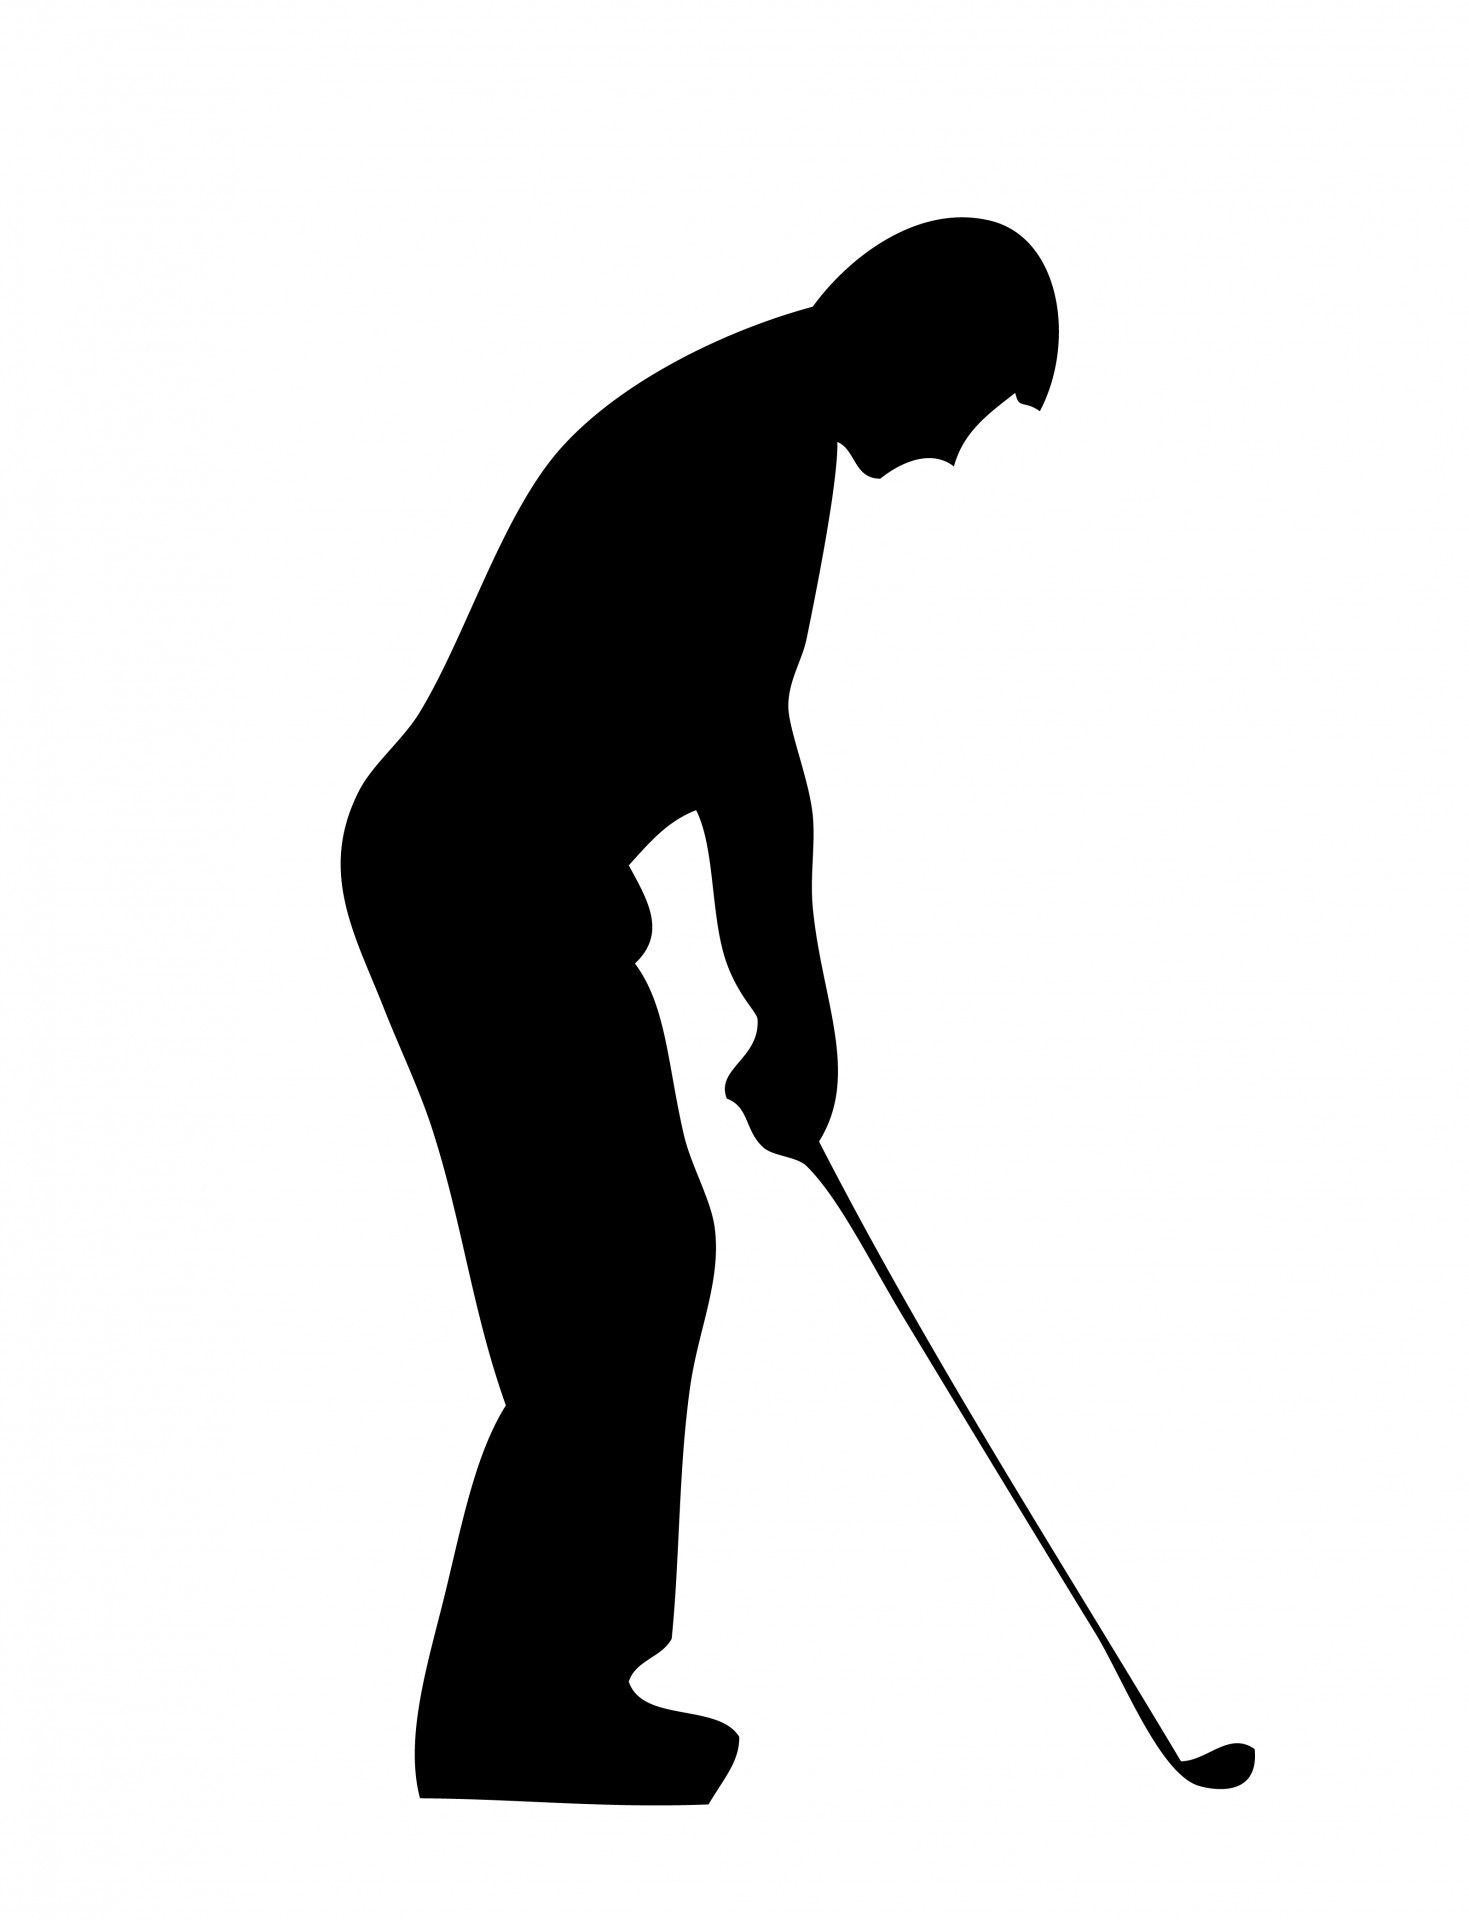 Golf player silhouette free. Golfing clipart clip art transparent